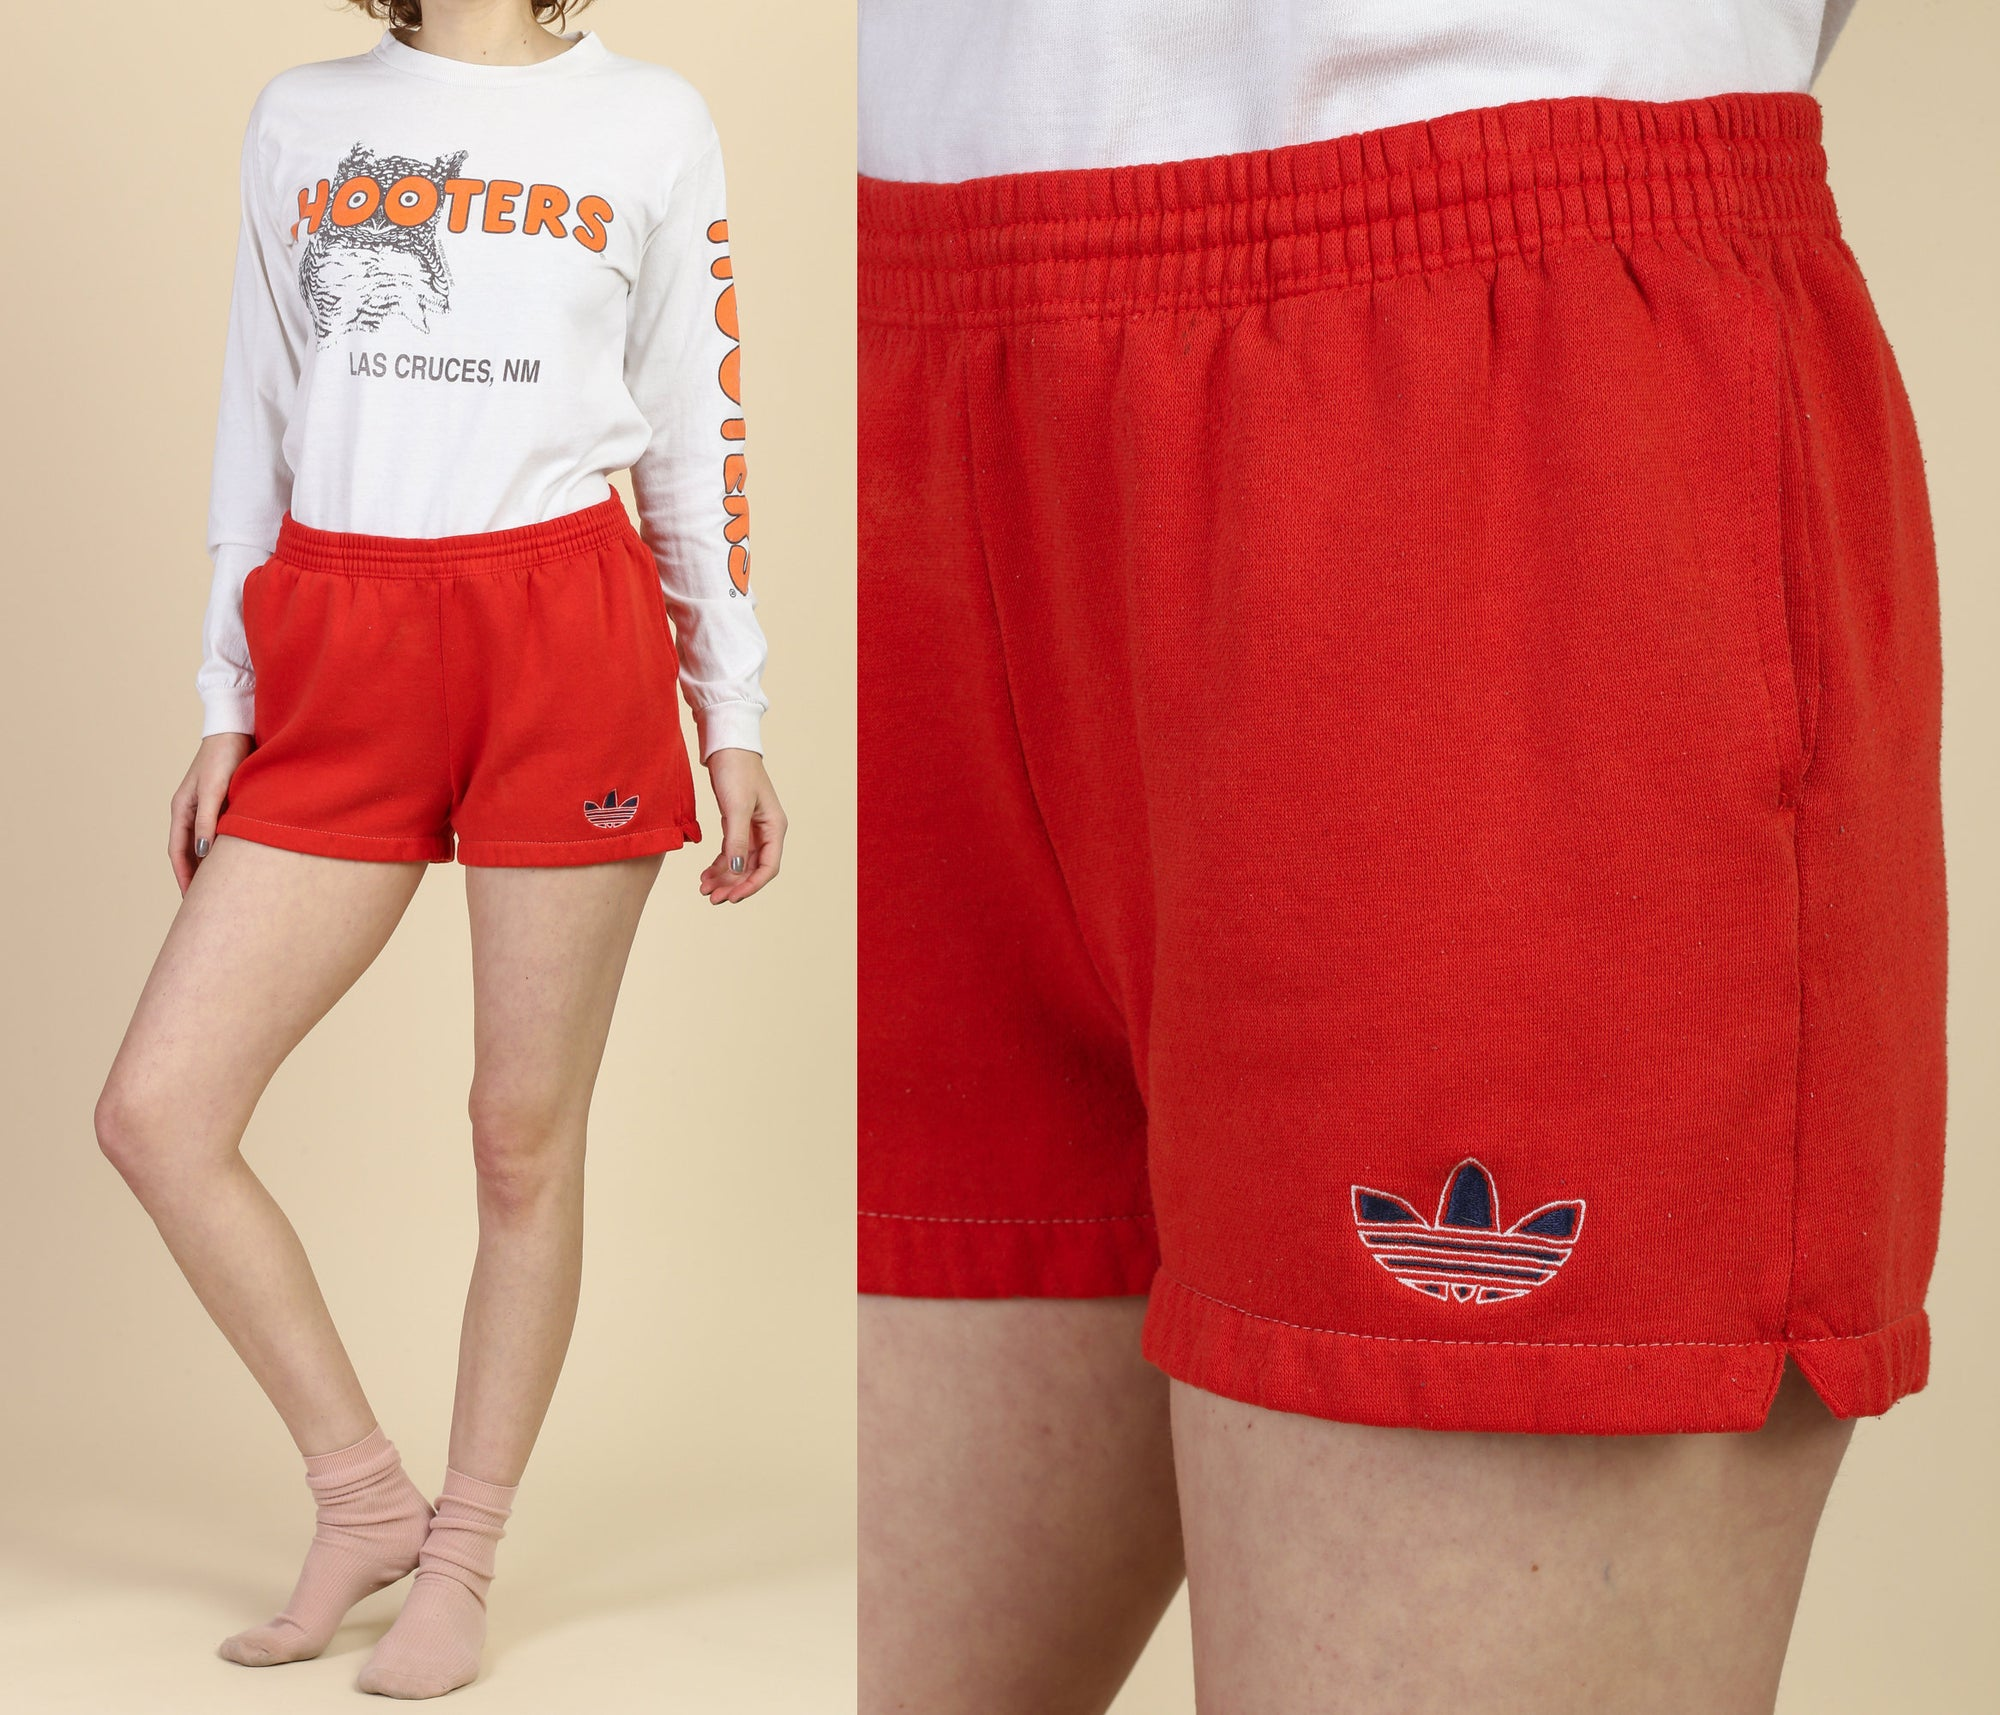 Vintage Adidas Trefoil Logo Shorts - Medium to Large